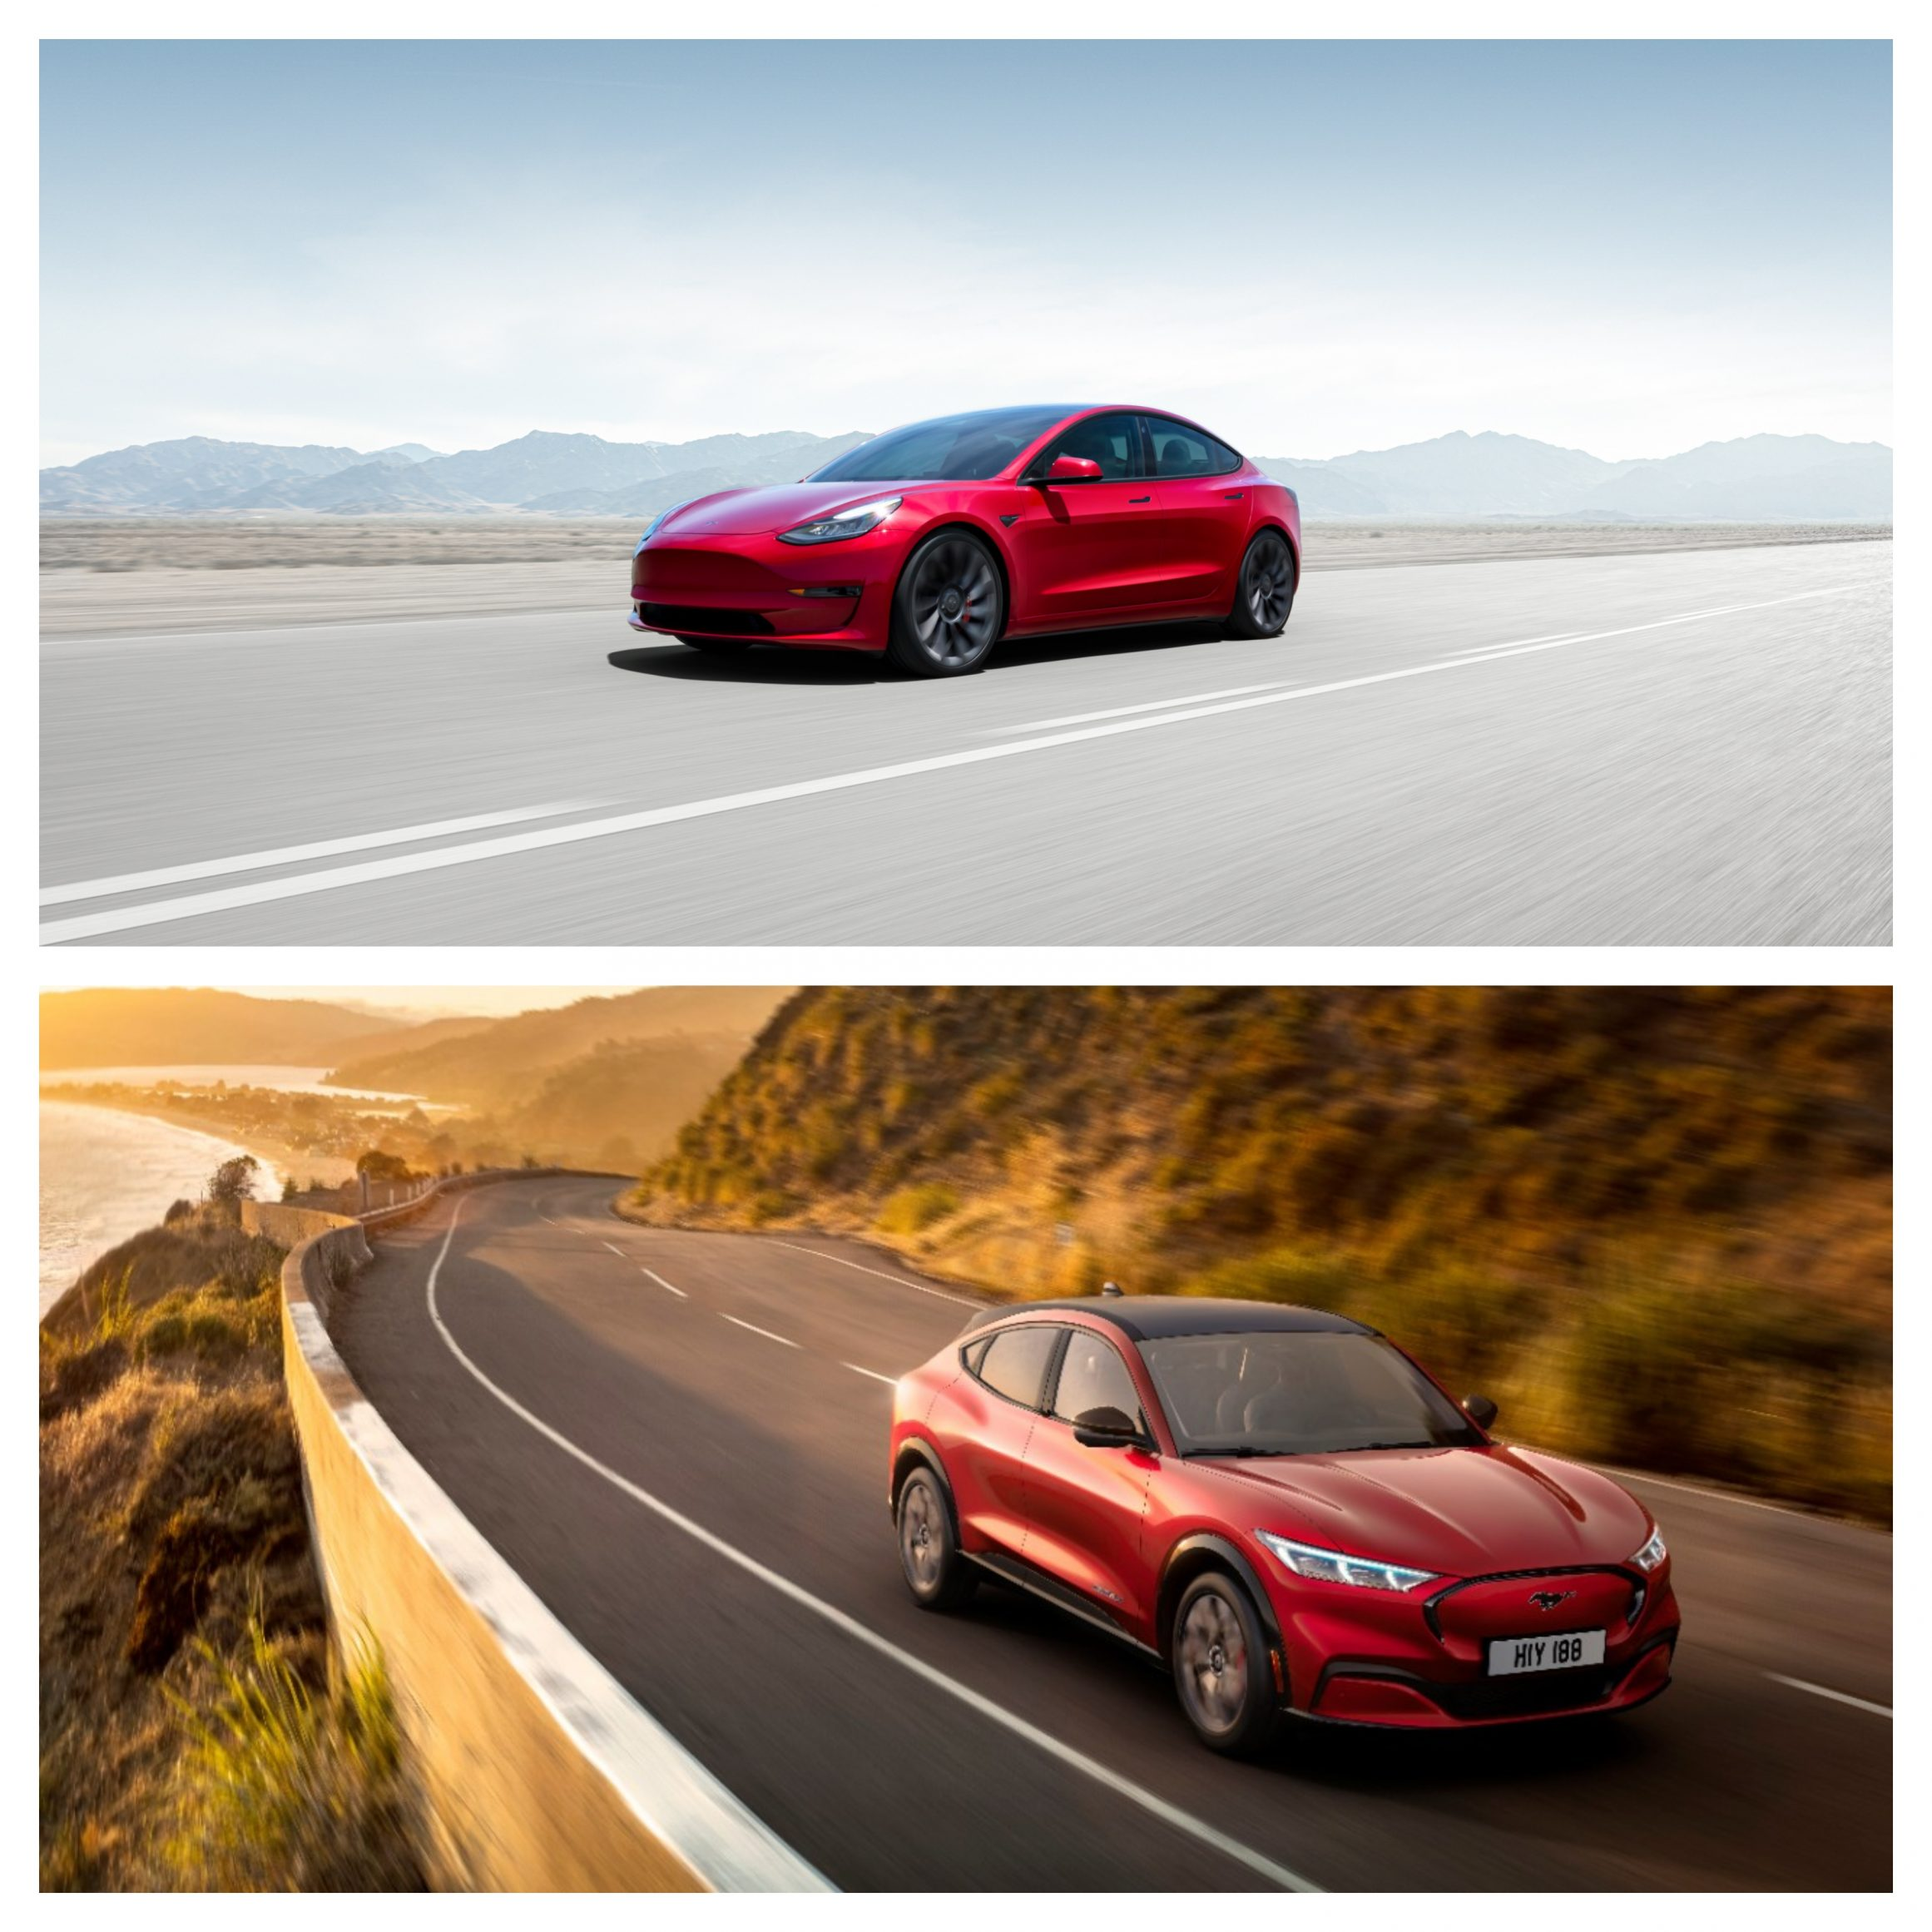 Tesla Model 3 Vs Ford Mustang Mach-E - performance and price